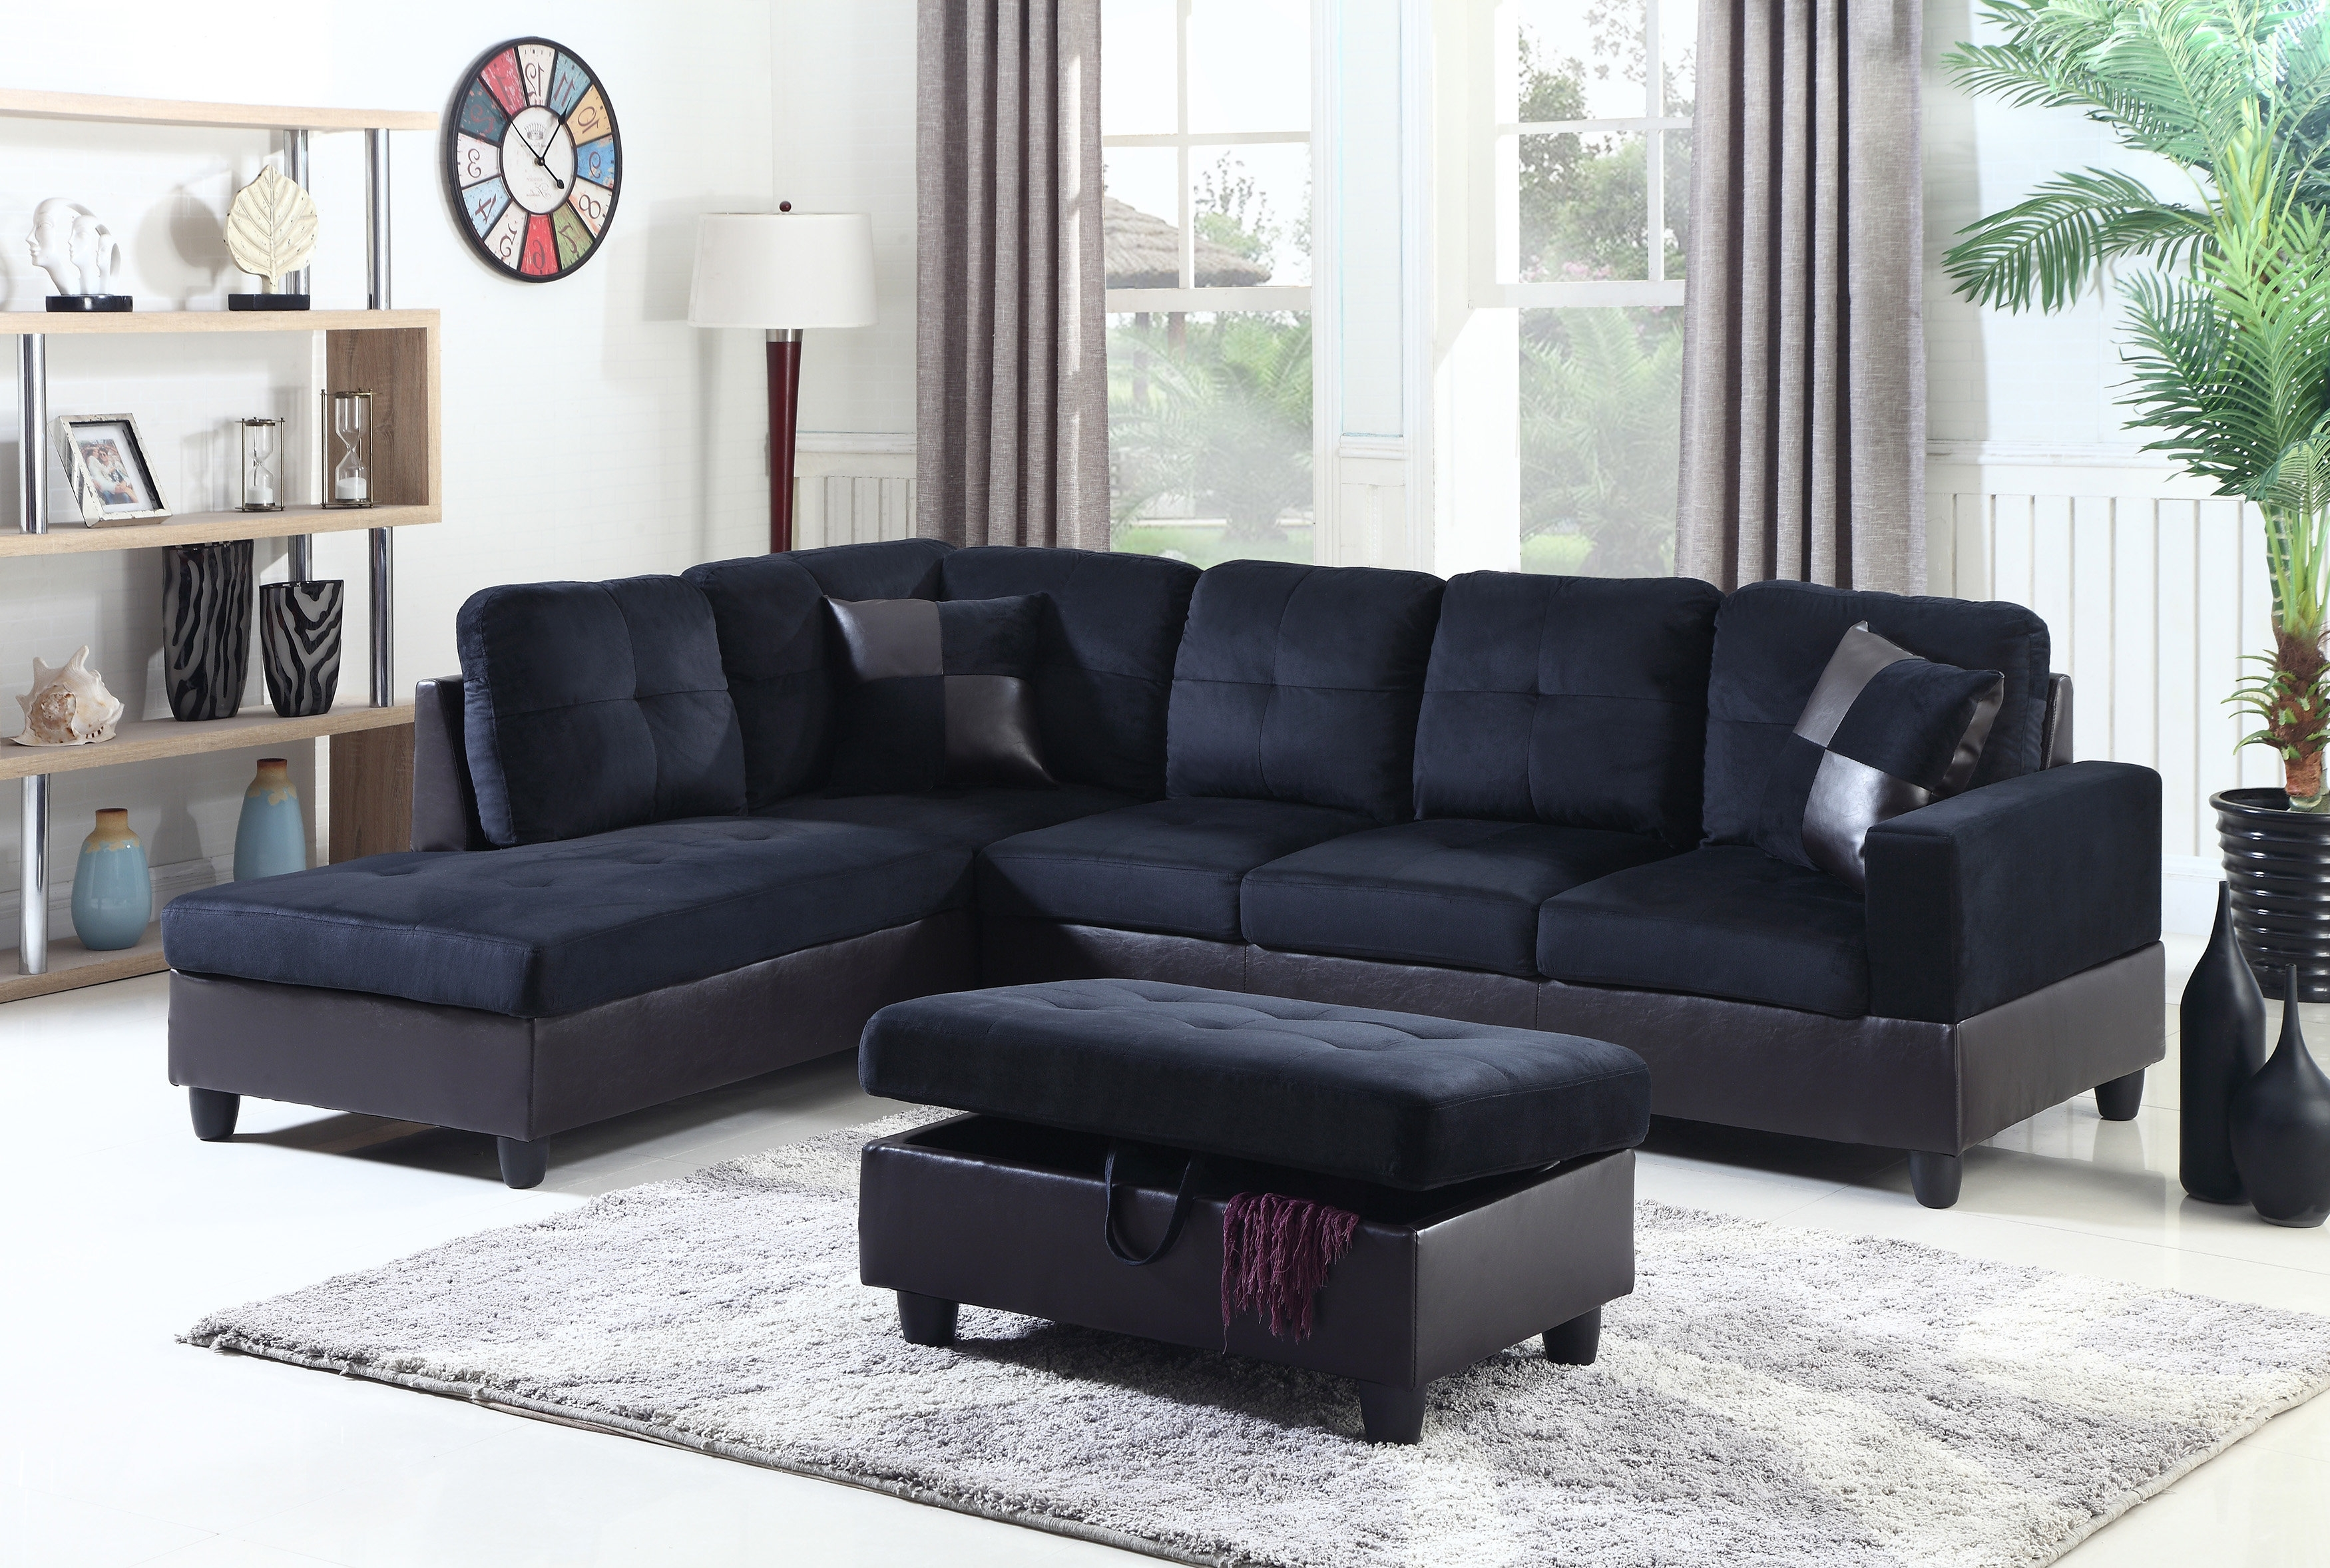 Beverly Fine Furniture Aiden Sectional | Wayfair throughout Aidan 4 Piece Sectionals (Image 10 of 30)